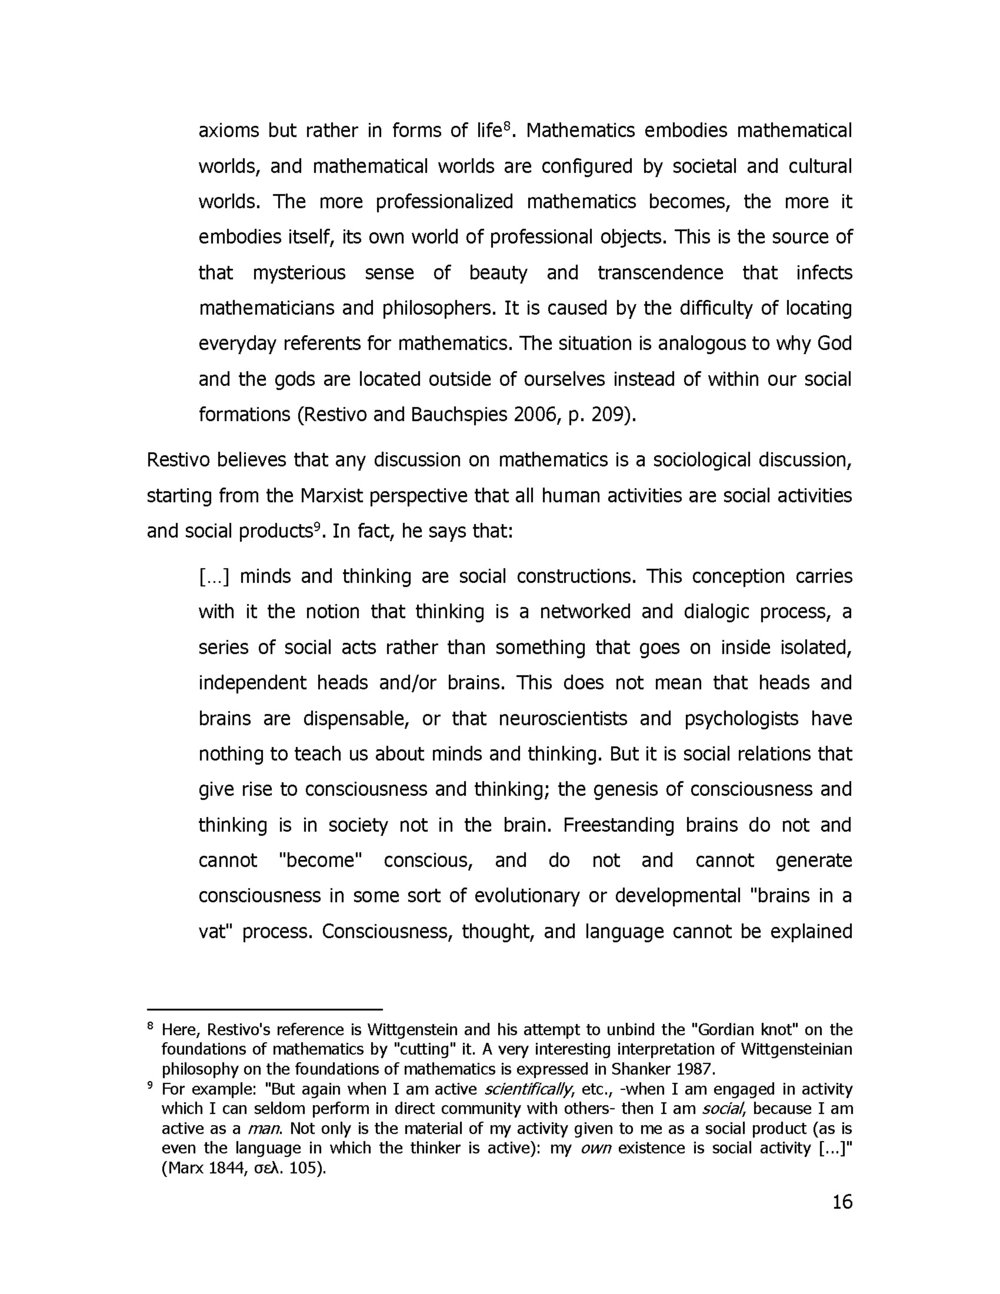 Timpilis, Dimitris (2011) Social and Cultural Approaches to the New Crisis in the Foundations of Mathematics, L. E. J. Brouwer's Free Will versus Leibniz's Dream_Page_17.jpg